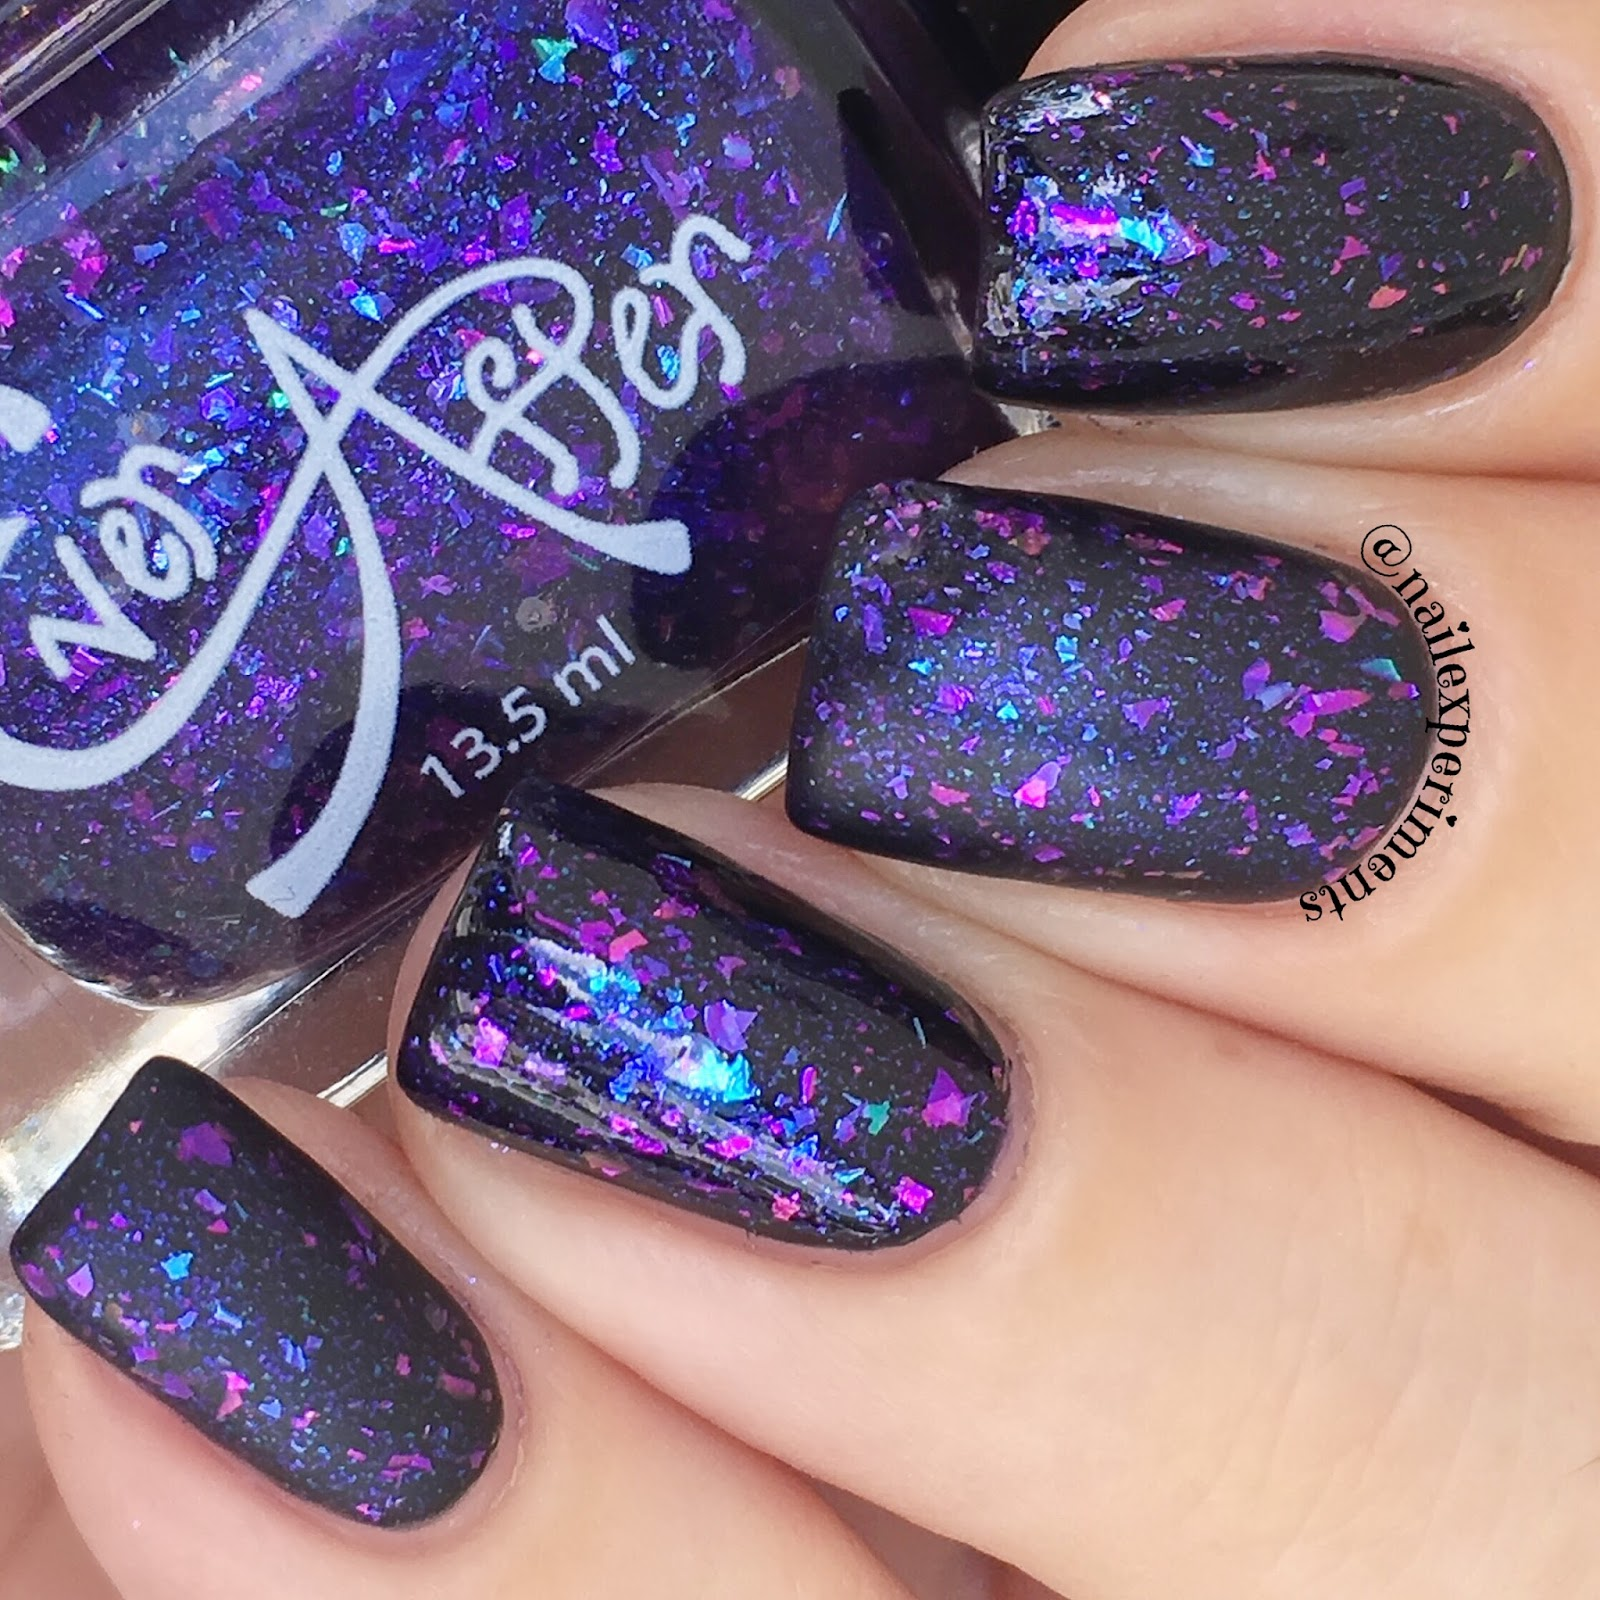 ever after polish flake it up jellies purple haze swatch